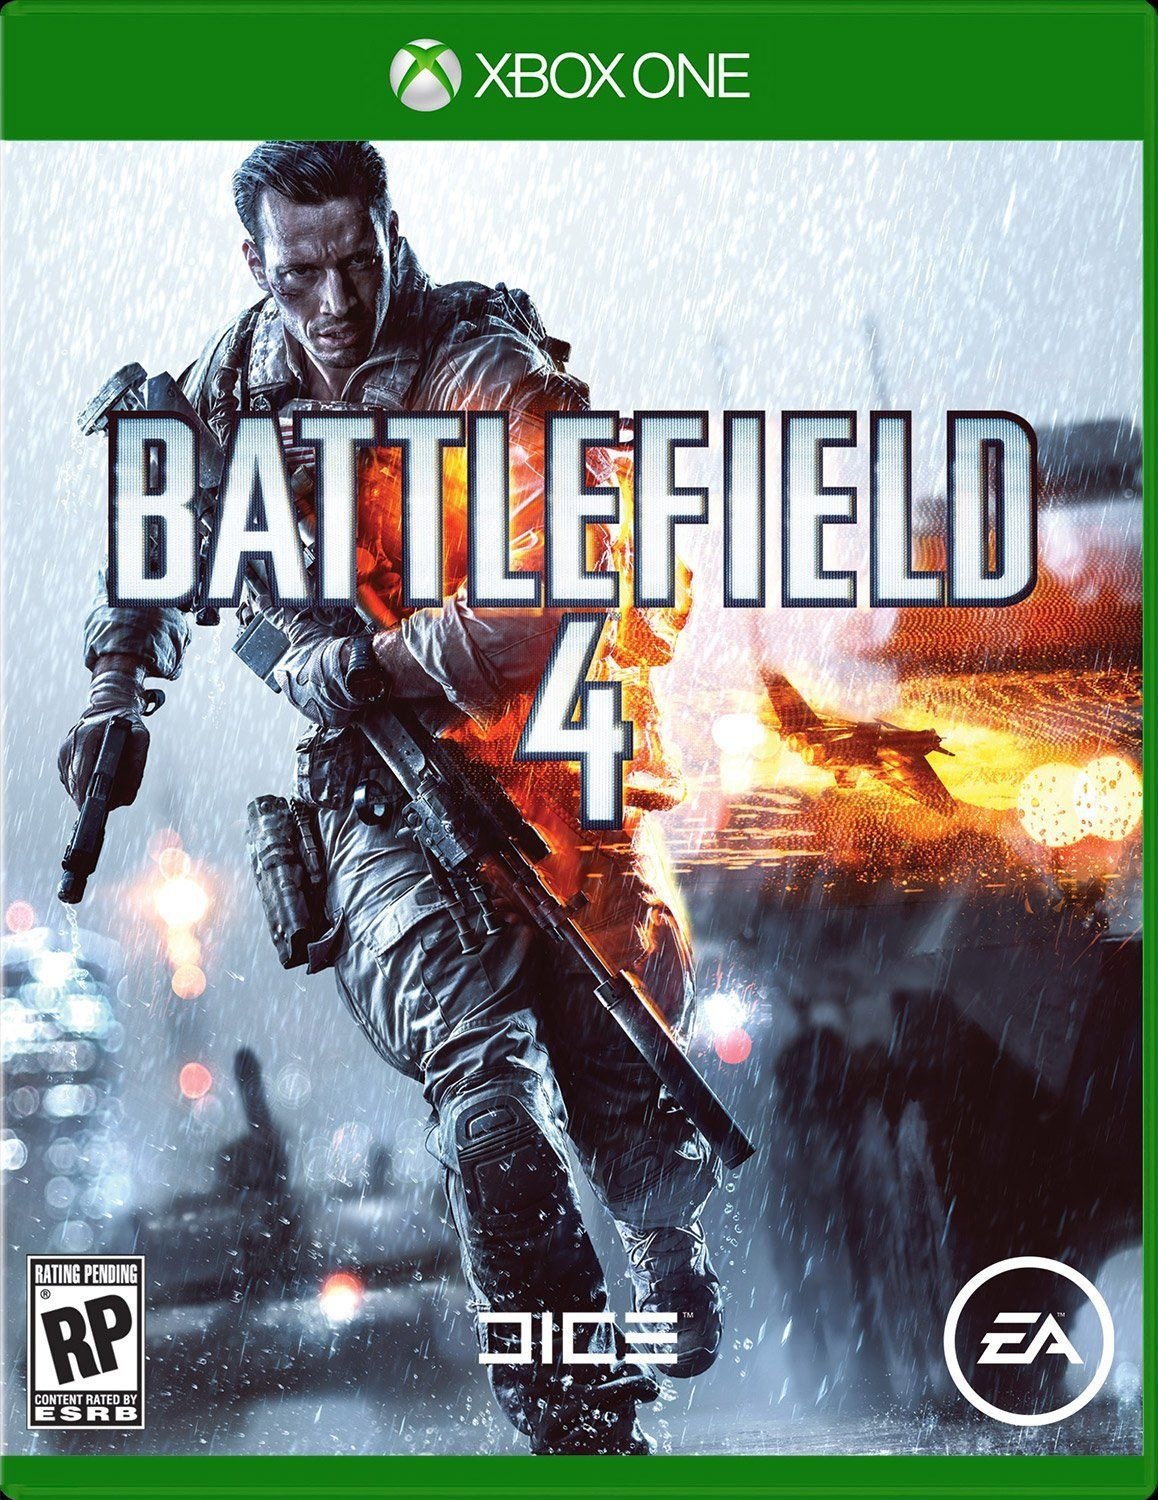 Battlefield 4 Xbox One Video Games On Xbox One Gaming With Images Battlefield 4 Xbox One Games Xbox 360 Games